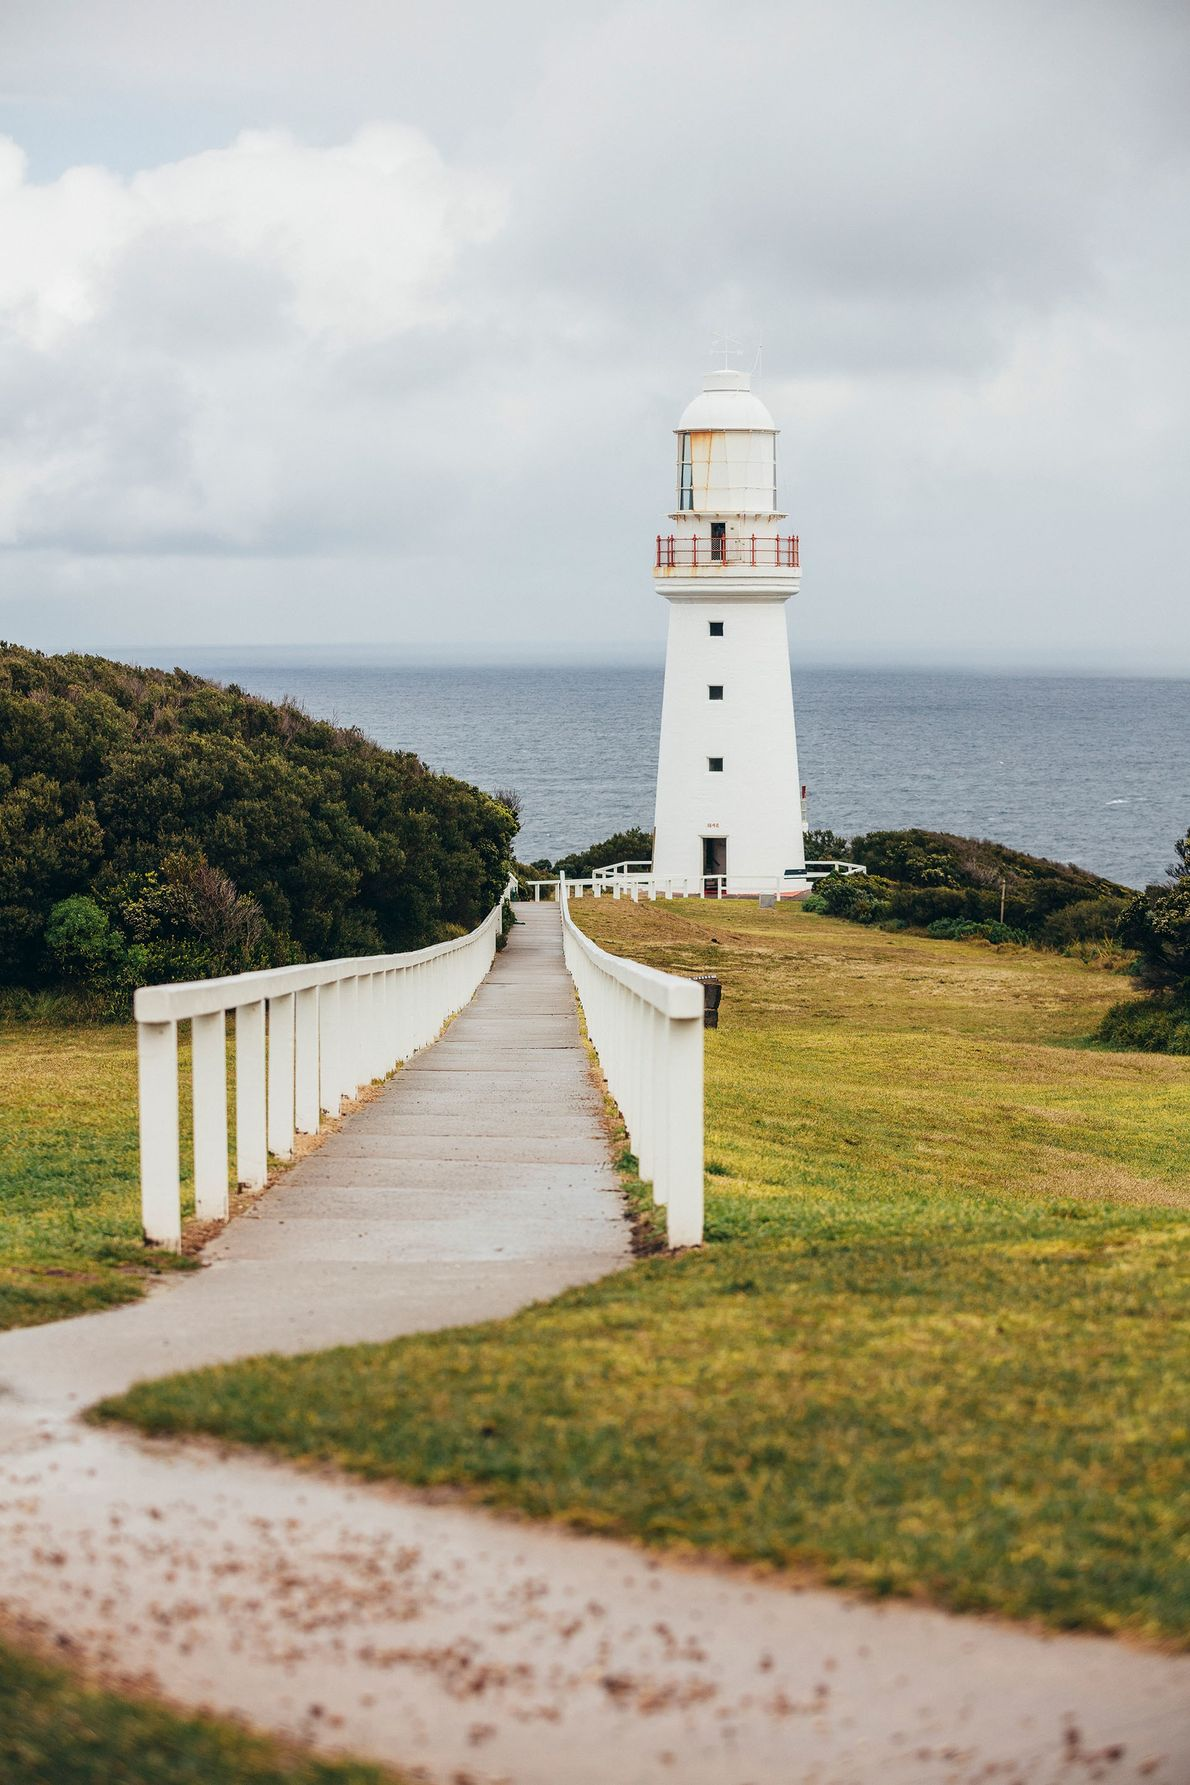 Cape Otway Lighthouse, Victoria's oldest working lighthouse.